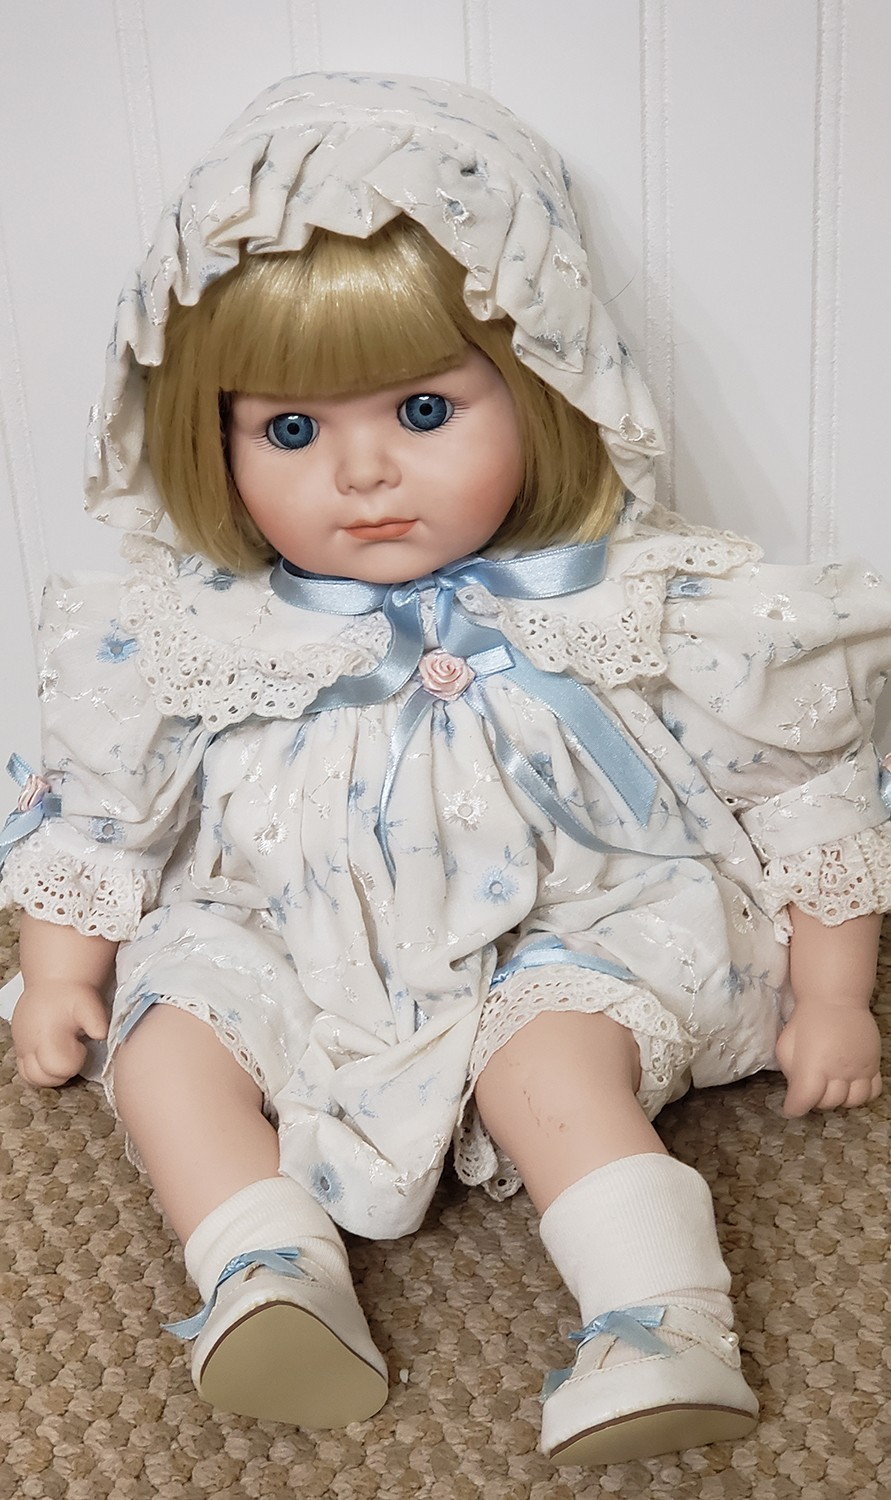 Haunted Doll Lara from Polly Cedar Estate